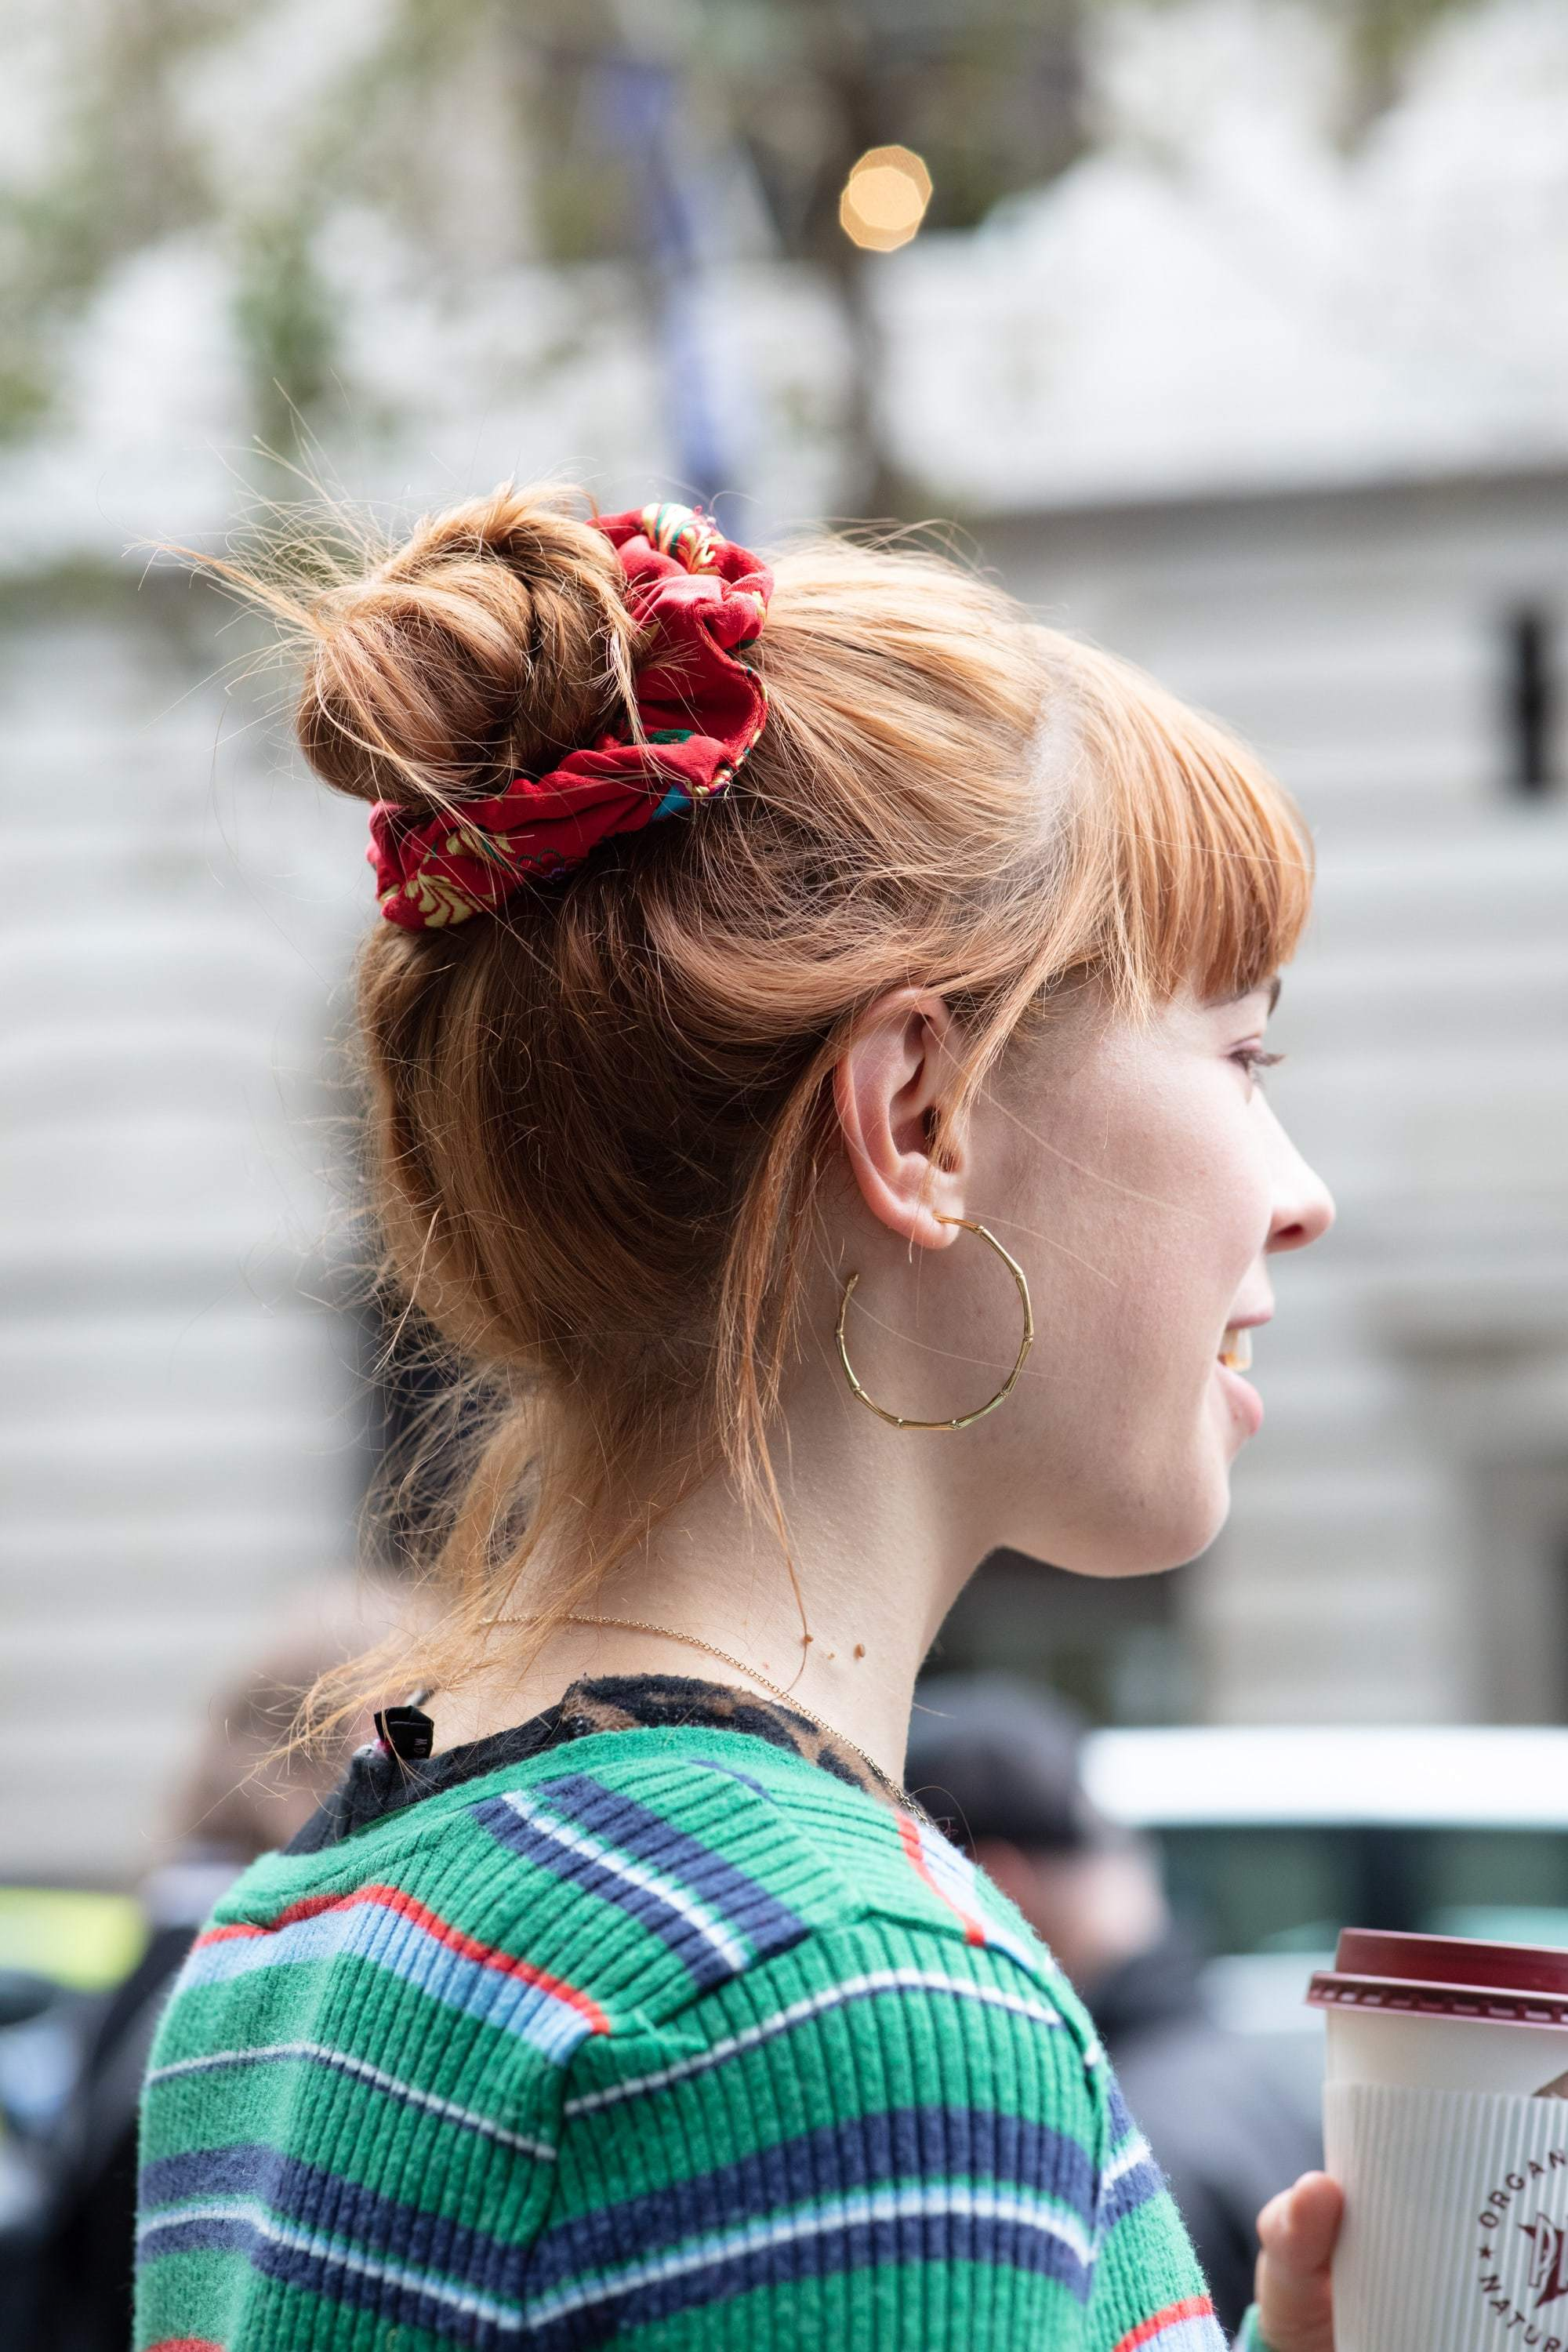 Woman with copper red fine hair styled into a messy bun with a scrunchie, wearing green striped top and posing for a street style all things hair shot